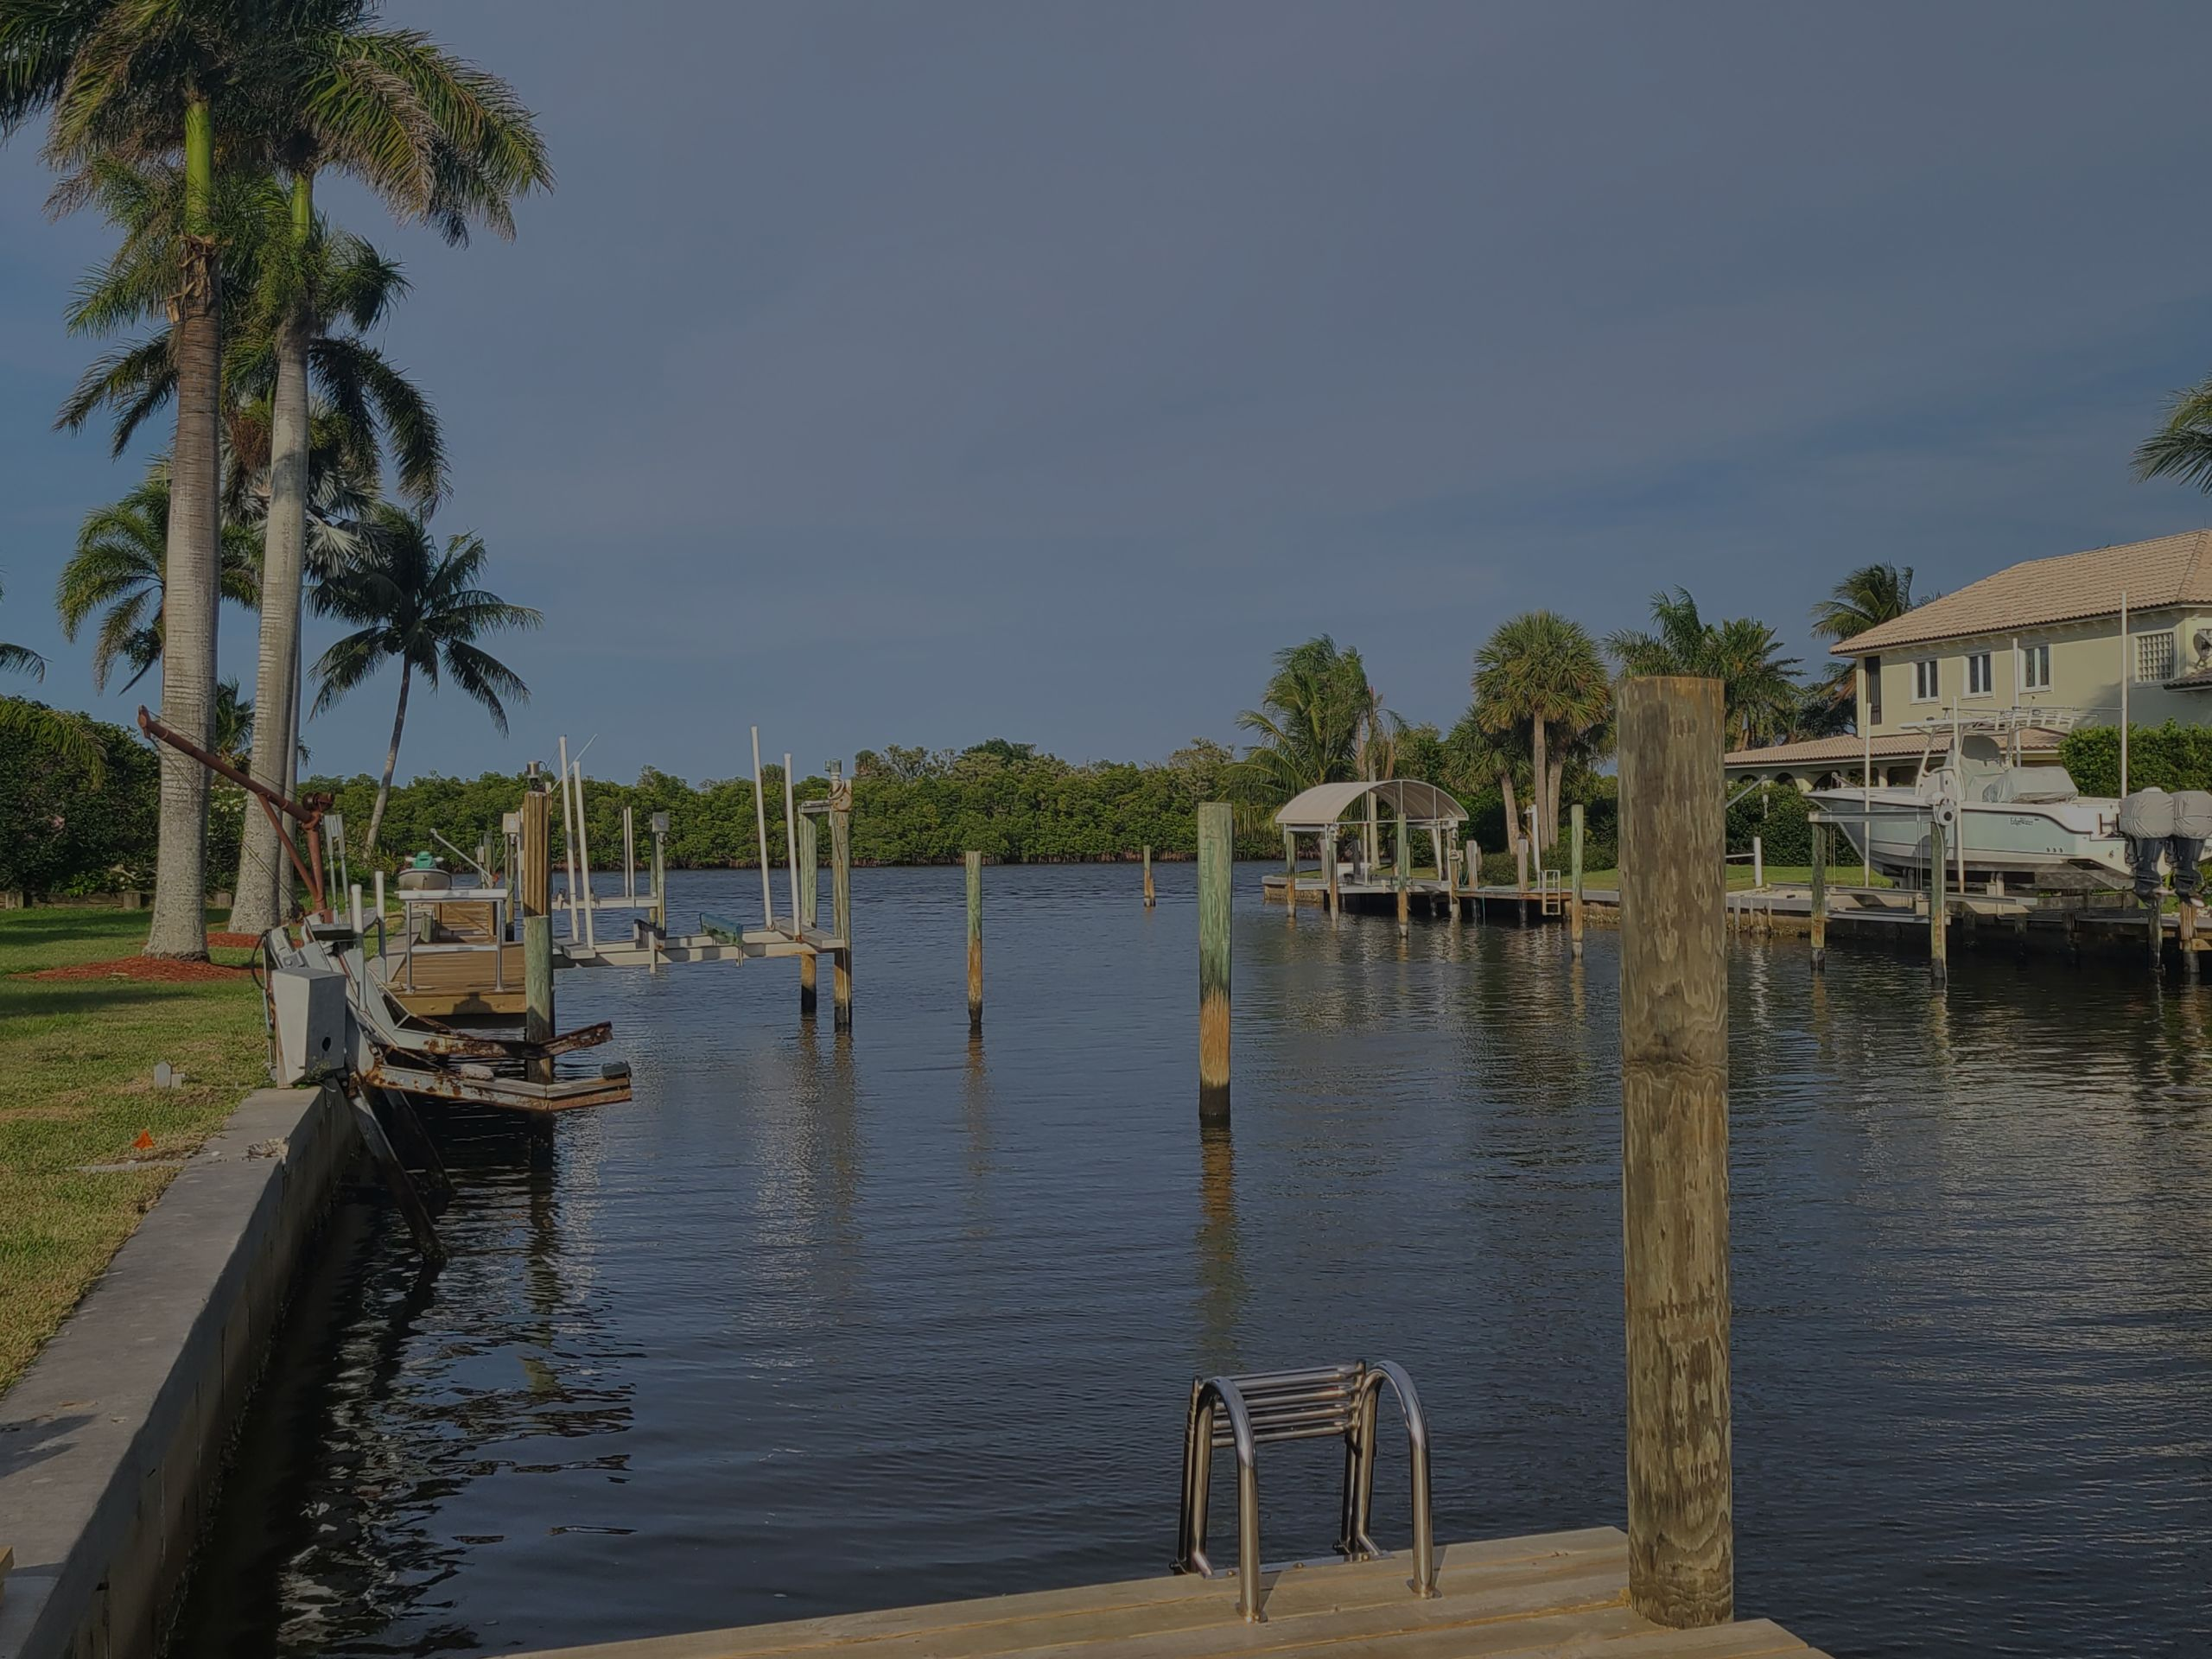 Terrific to meet wonderful clients & assist in finding their new home on the water in Hobe SoundS